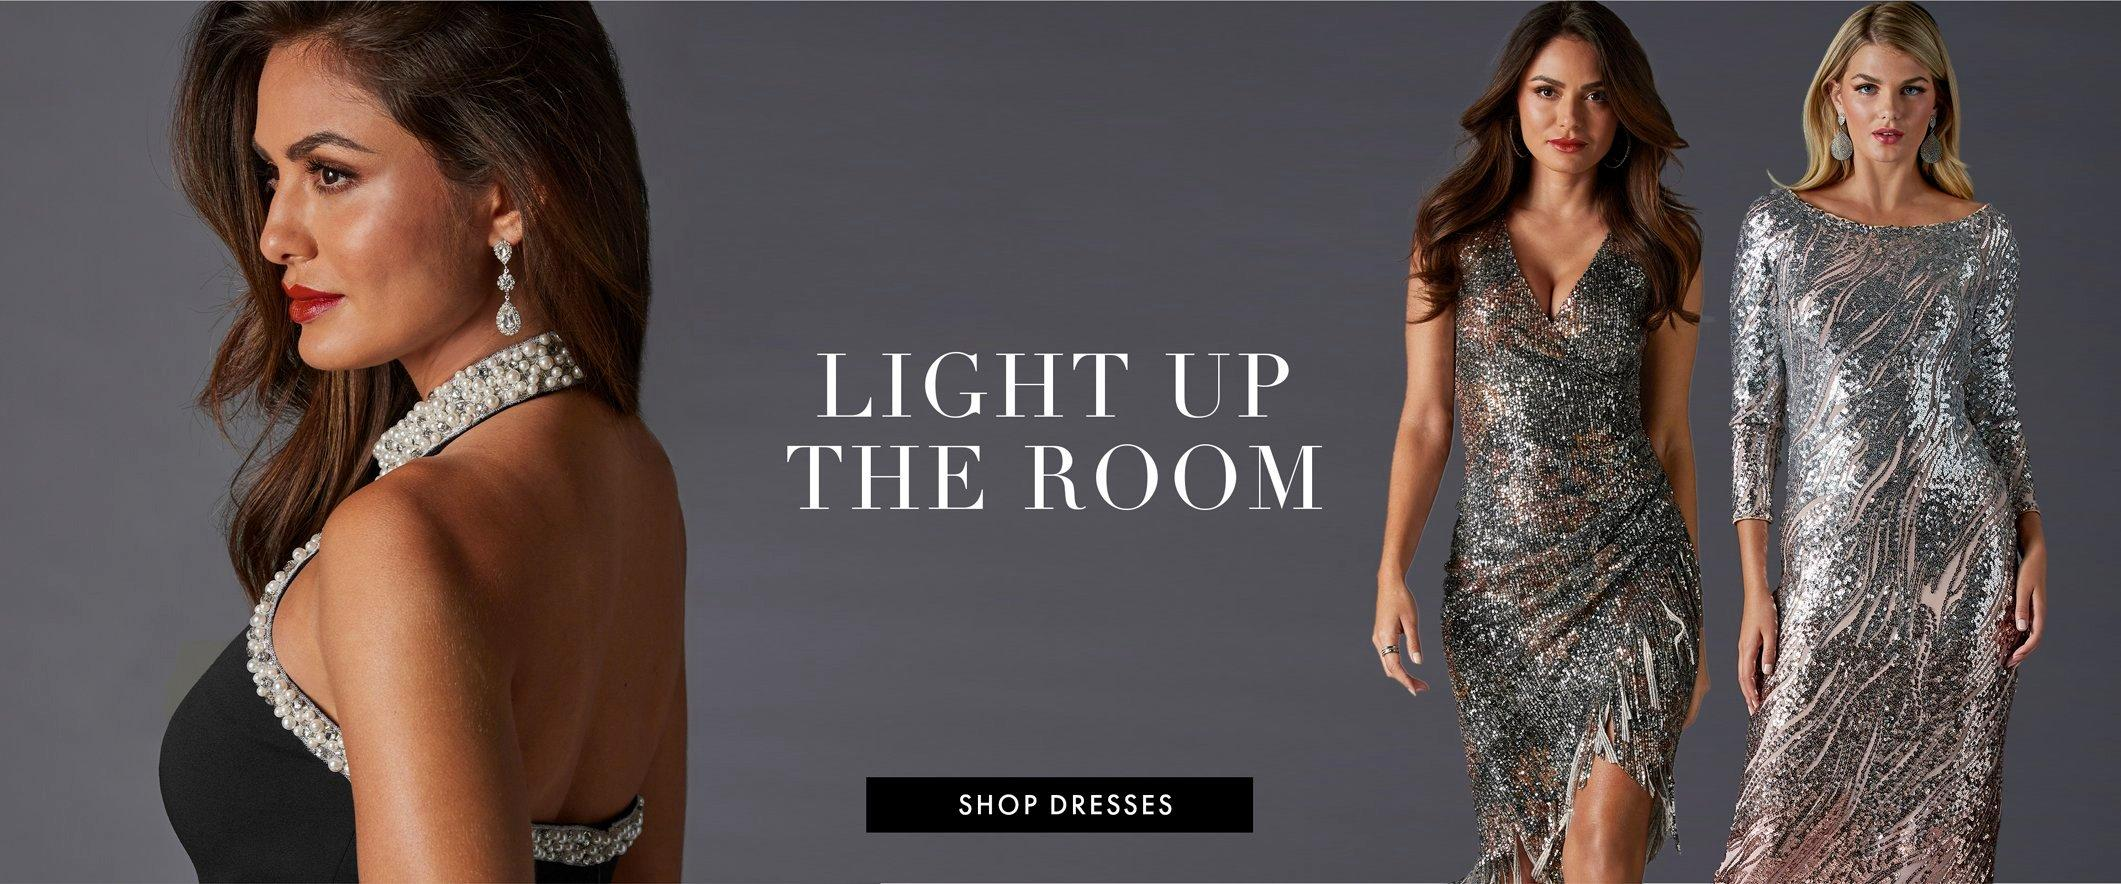 left model wearing a black jumpsuit with pearl embellishments. middle model wearing a sleeveless sequin v-neck fringe dress. right model wearing a silver sequin long-sleeve midi dress. text: light up the room.